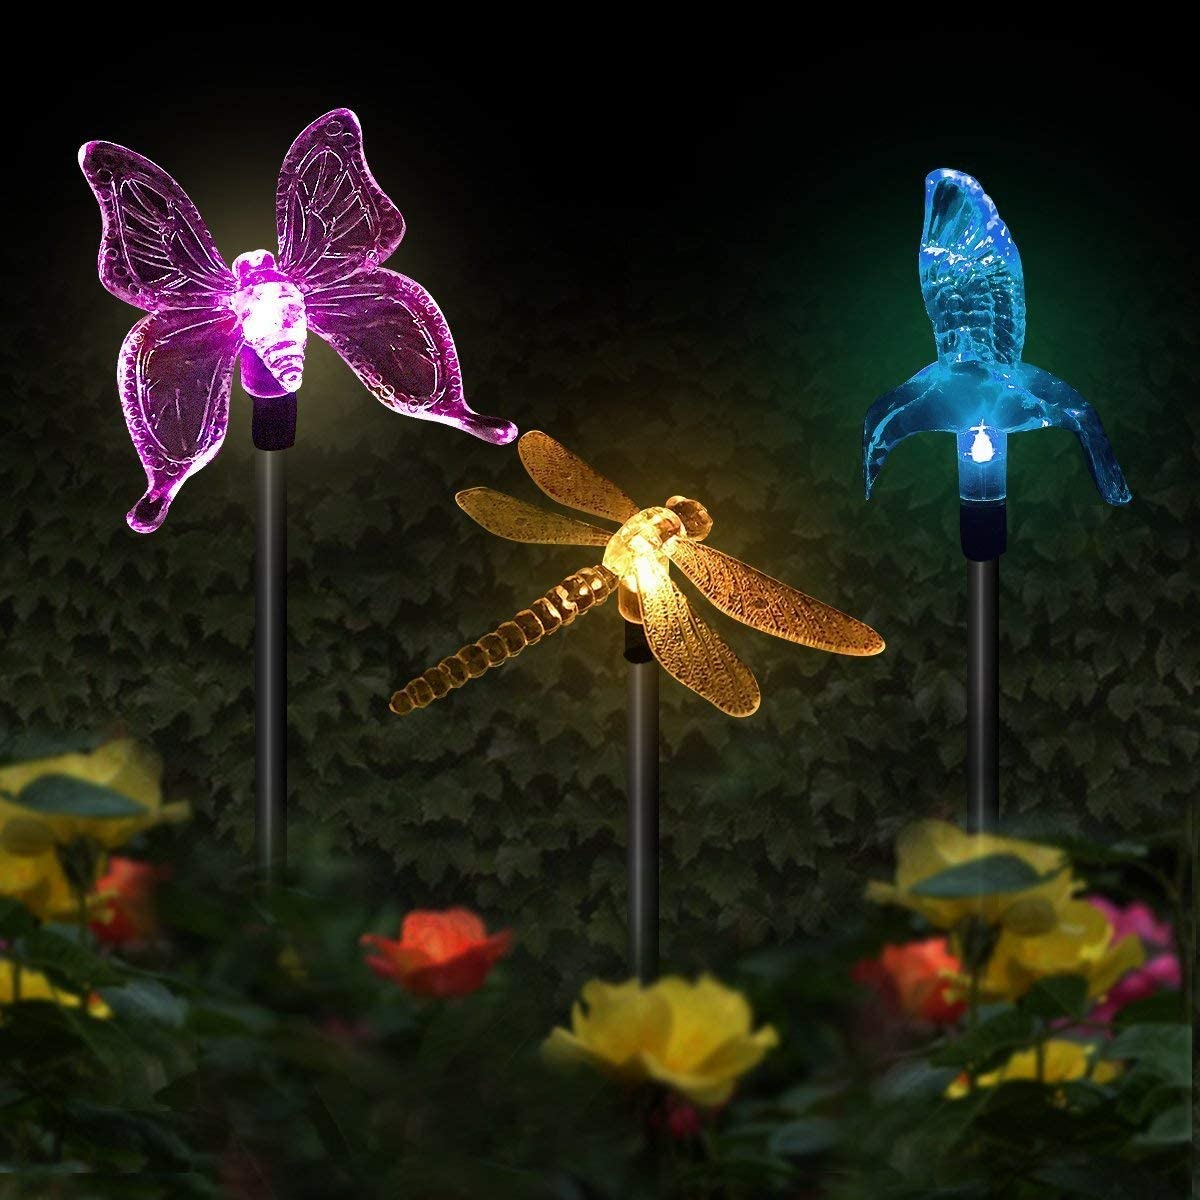 Butterfly Solar Garden Lights, 3 Pack Hummingbird Dragonfly Solar Garden Stake Light, Multi-Color Changing Solar Powered Decorative Landscape Lighting for Outdoor Path, Yard, Lawn, Patio